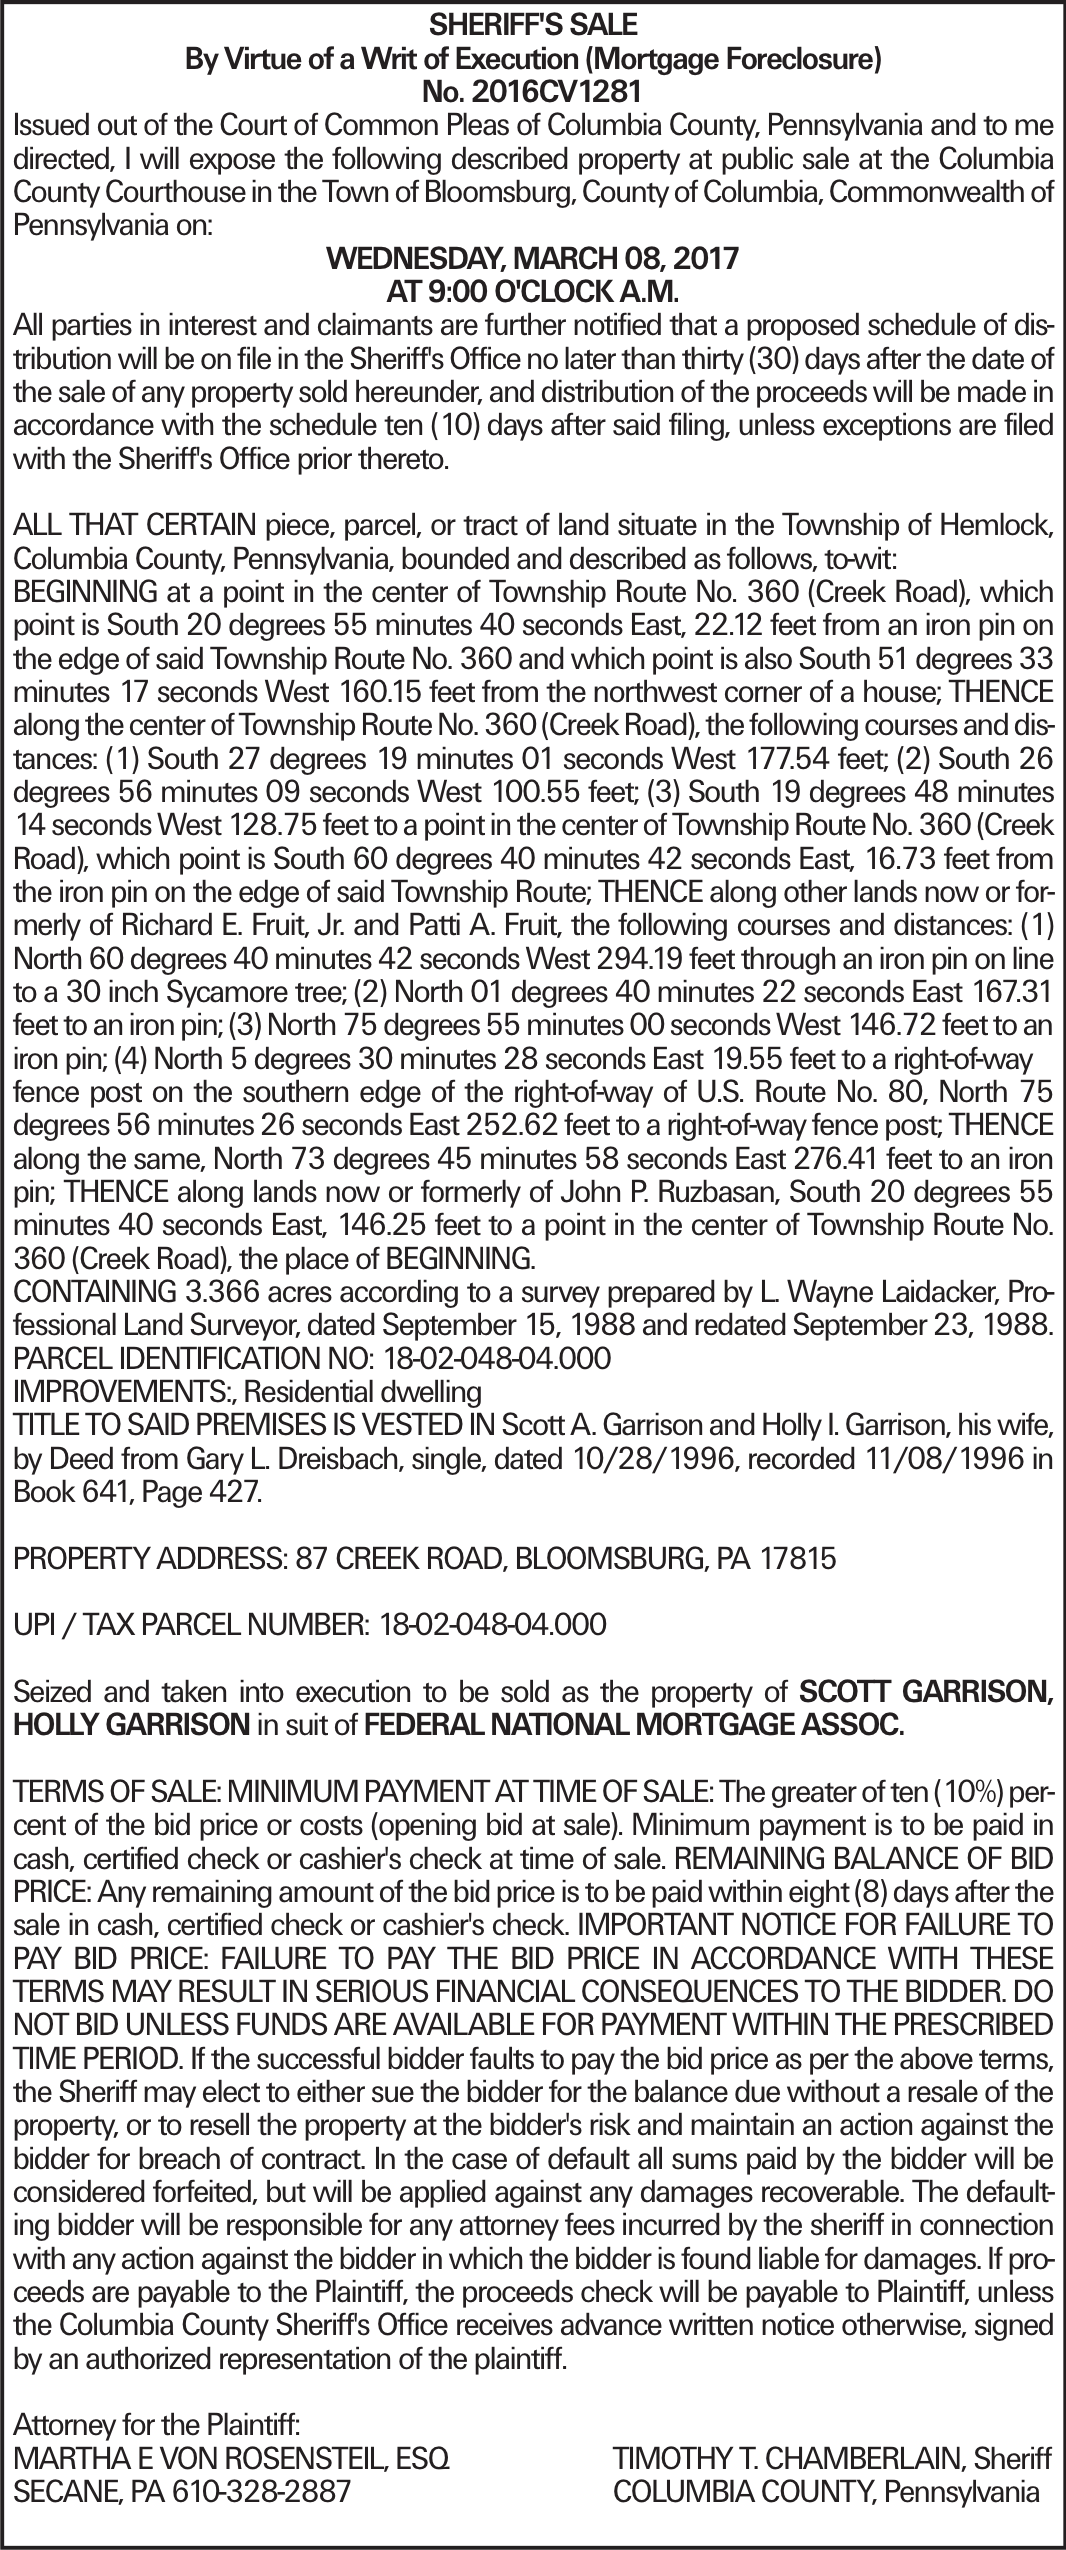 SHERIFF'S SALE By Virtue of a Writ of Execution (Mortgage Foreclosure) No. 2016CV1281 Issued out of the Court of Common Pleas of Columbia County, Pennsylvania and to me directed, I will expose the following described property at public sale at the Columbia County Courthouse in the Town of Bloomsburg, County of Columbia, Commonwealth of Pennsylvania on: WEDNESDAY, MARCH 08, 2017 AT 9:00 O'CLOCK A.M. All parties in interest and claimants are further notified that a proposed schedule of distribution will be on file in the Sheriff's Office no later than thirty (30) days after the date of the sale of any property sold hereunder, and distribution of the proceeds will be made in accordance with the schedule ten (10) days after said filing, unless exceptions are filed with the Sheriff's Office prior thereto. ALL THAT CERTAIN piece, parcel, or tract of land situate in the Township of Hemlock, Columbia County, Pennsylvania, bounded and described as follows, to-wit: BEGINNING at a point in the center of Township Route No. 360 (Creek Road), which point is South 20 degrees 55 minutes 40 seconds East, 22.12 feet from an iron pin on the edge of said Township Route No. 360 and which point is also South 51 degrees 33 minutes 17 seconds West 160.15 feet from the northwest corner of a house; THENCE along the center of Township Route No. 360 (Creek Road), the following courses and distances: (1) South 27 degrees 19 minutes 01 seconds West 177.54 feet; (2) South 26 degrees 56 minutes 09 seconds West 100.55 feet; (3) South 19 degrees 48 minutes 14 seconds West 128.75 feet to a point in the center of Township Route No. 360 (Creek Road), which point is South 60 degrees 40 minutes 42 seconds East, 16.73 feet from the iron pin on the edge of said Township Route; THENCE along other lands now or formerly of Richard E. Fruit, Jr. and Patti A. Fruit, the following courses and distances: (1) North 60 degrees 40 minutes 42 seconds West 294.19 feet through an iron pin on line to a 30 inch Sycamore 